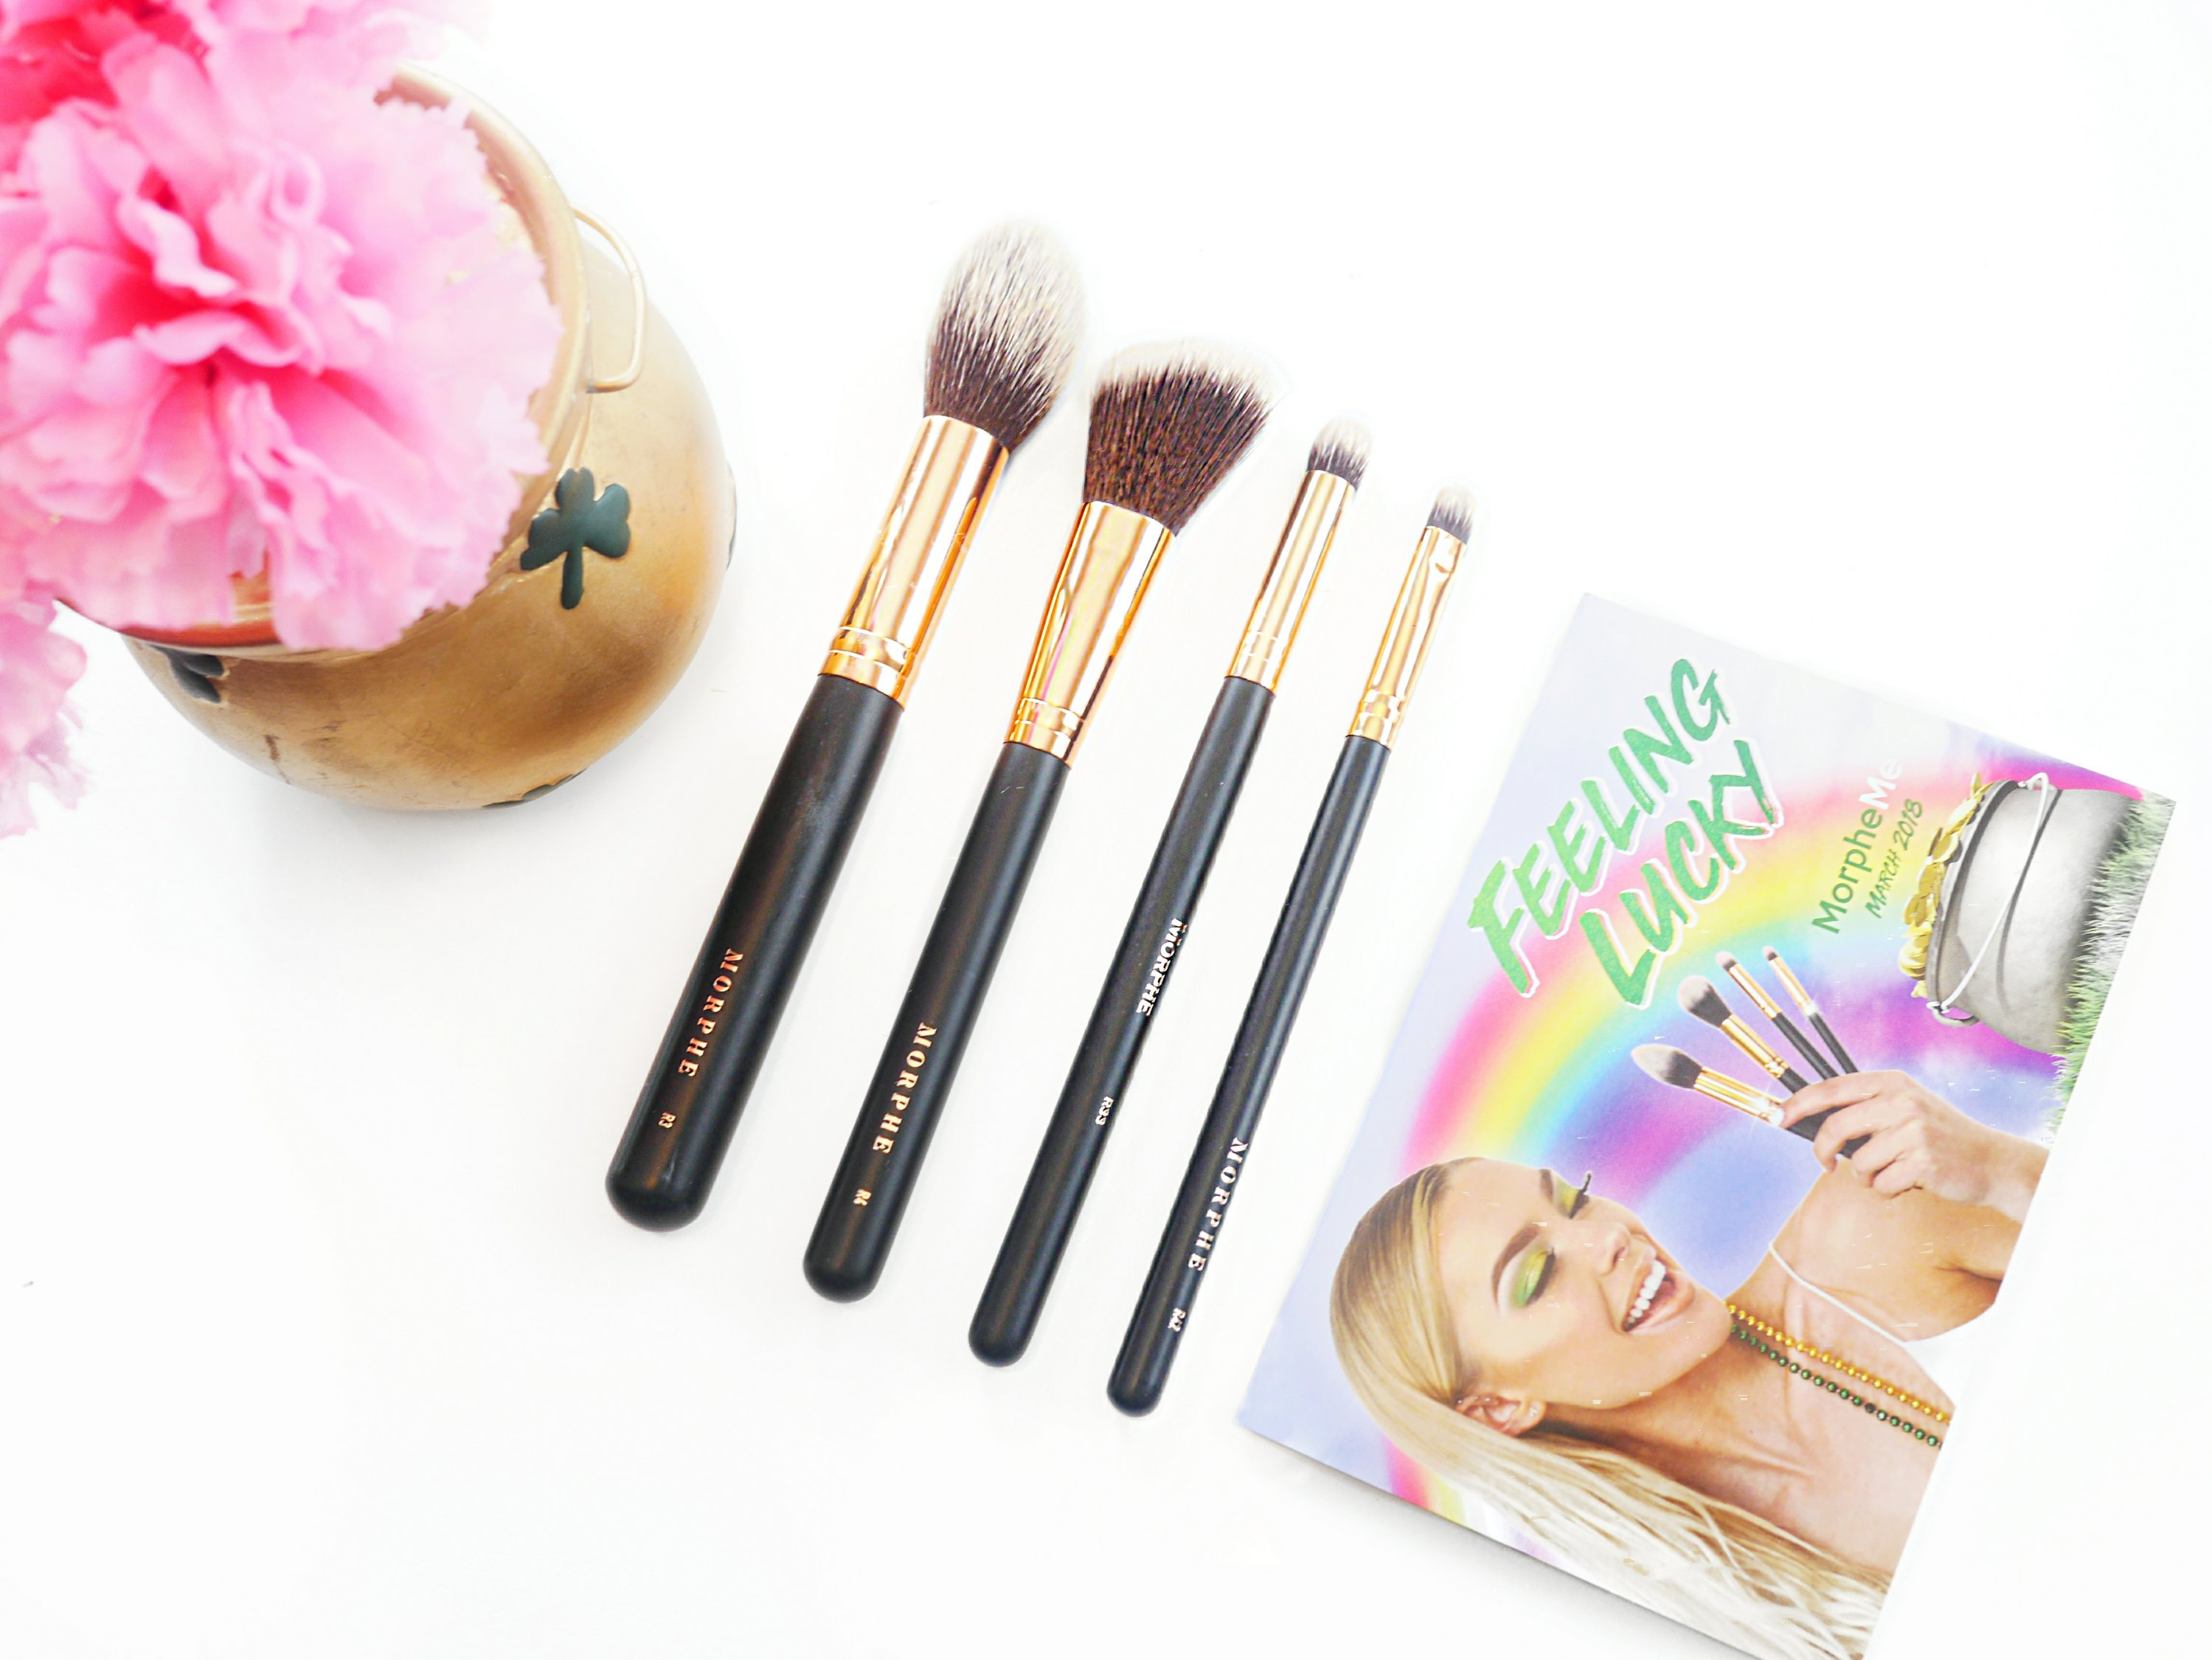 Morphe Me Brush Subscription – March 2018 Brushes